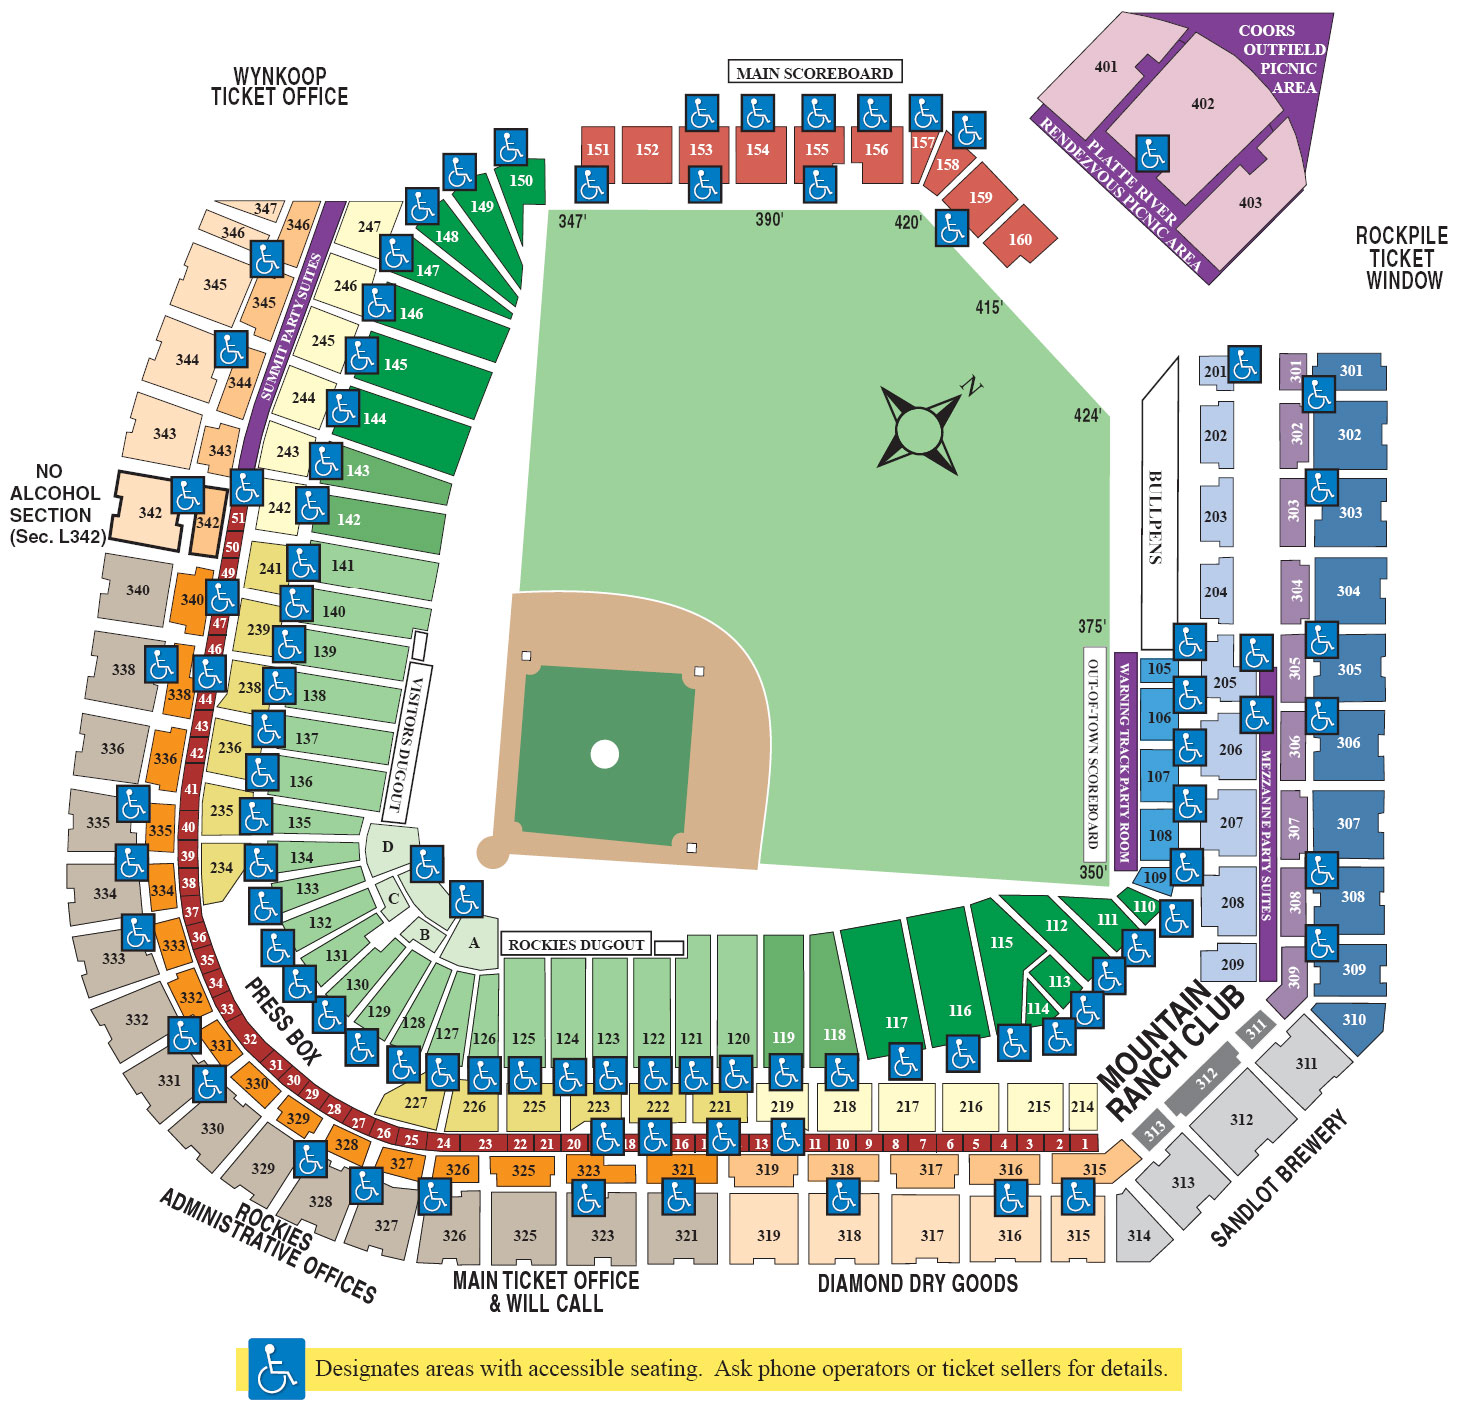 A Mile High View at Coors Field - TBA